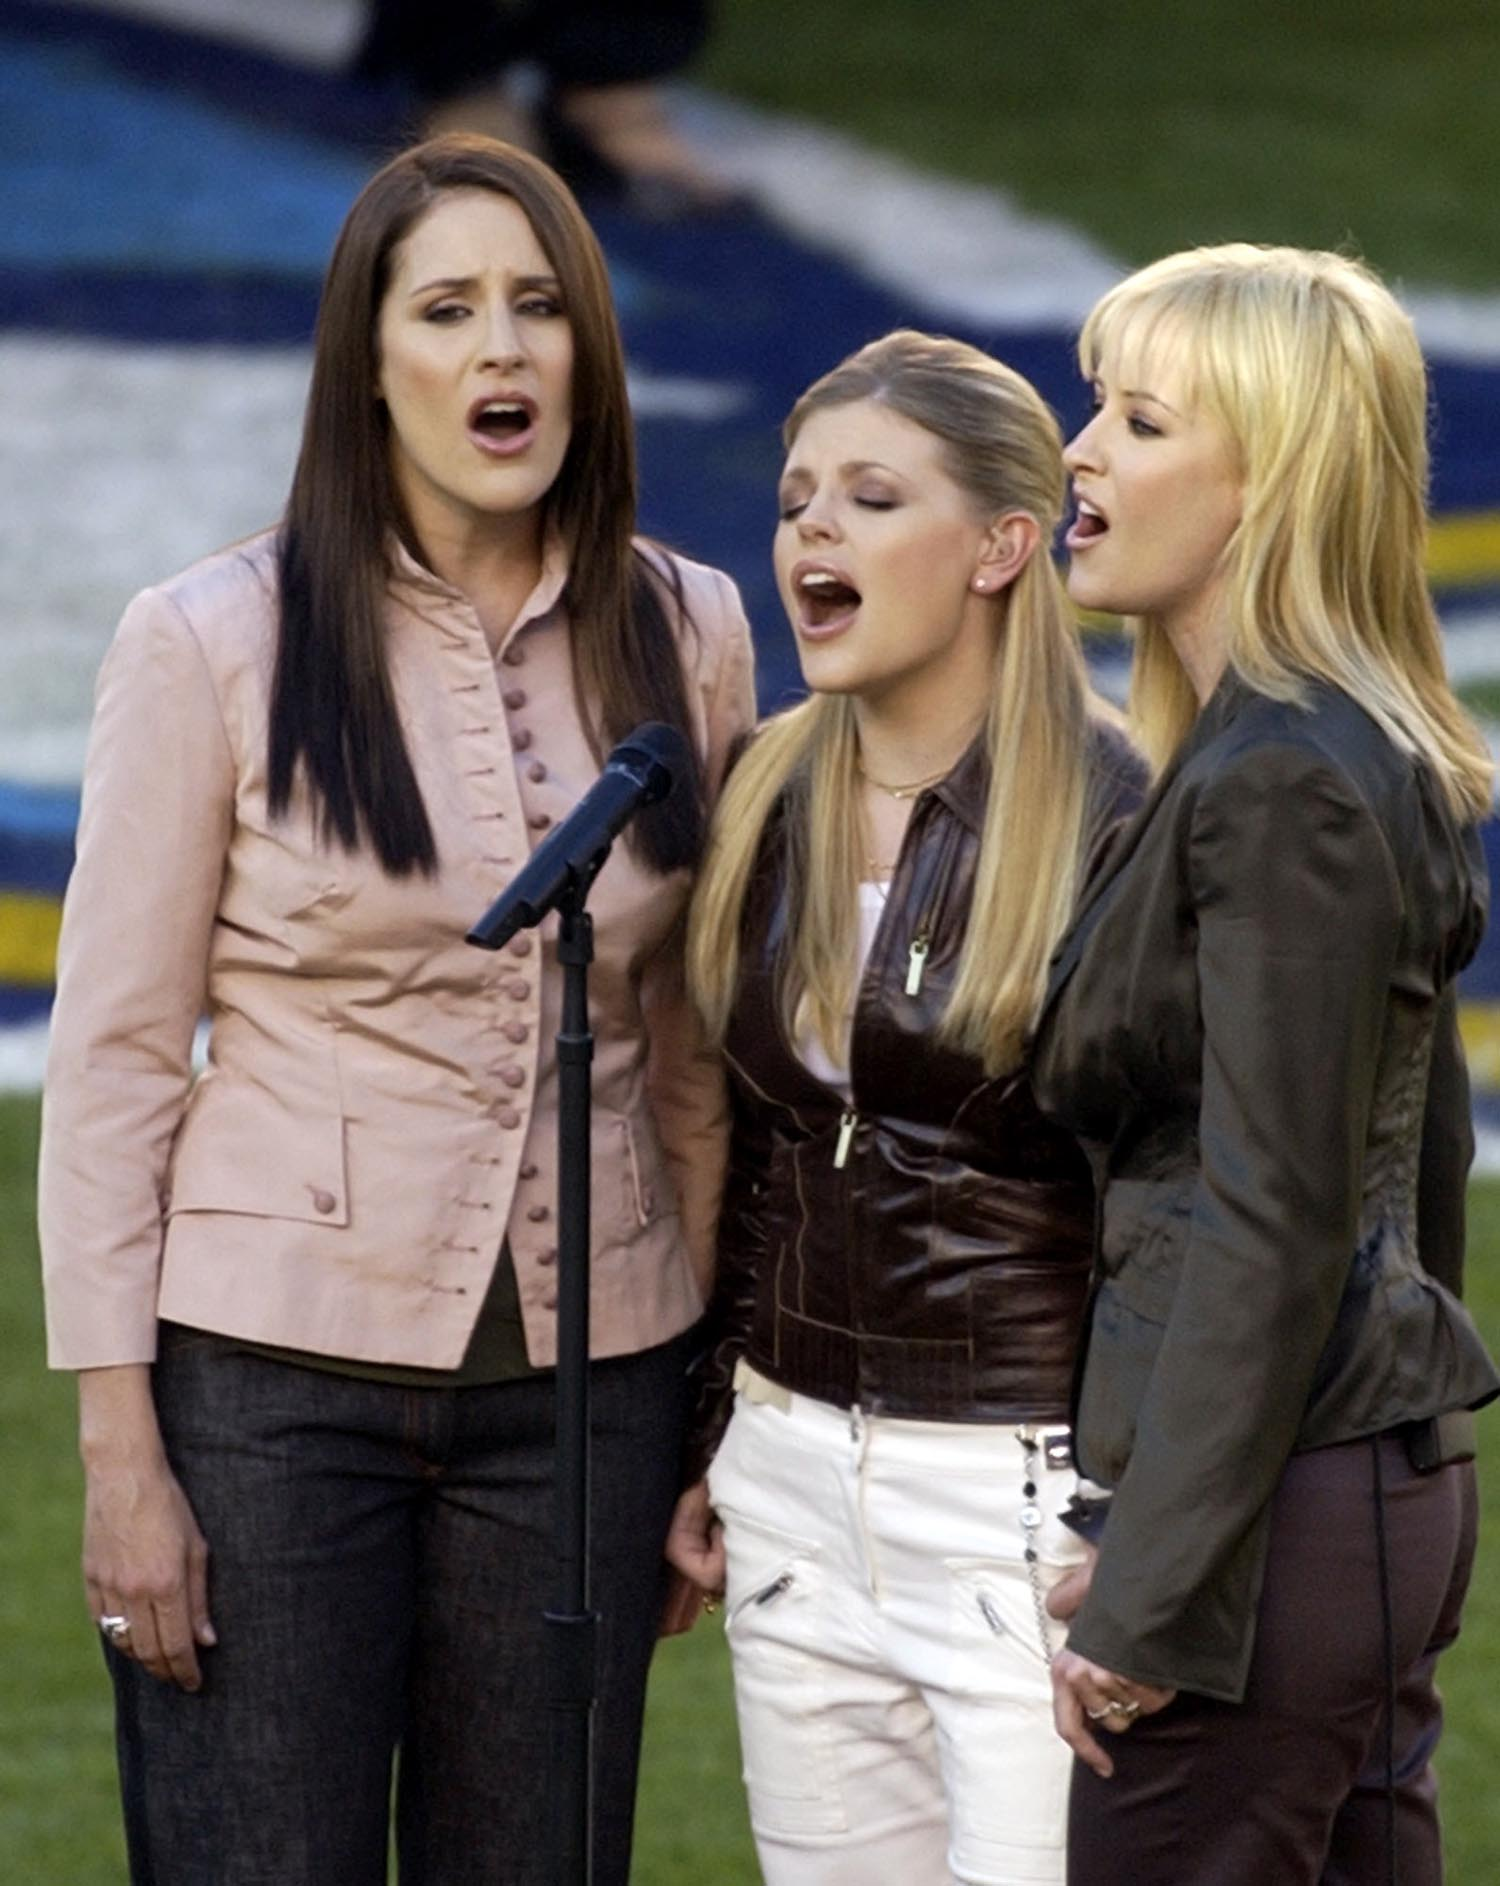 """<div class=""""meta image-caption""""><div class=""""origin-logo origin-image ap""""><span>AP</span></div><span class=""""caption-text"""">2003: The Dixie Chicks, from left, Emily Robison, Natalie Maines and Martie Maguire sing the National Anthem before Super Bowl XXXVII in San Diego, Sunday, Jan. 26, 2003. (AP Photo/Elaine Thompson)</span></div>"""